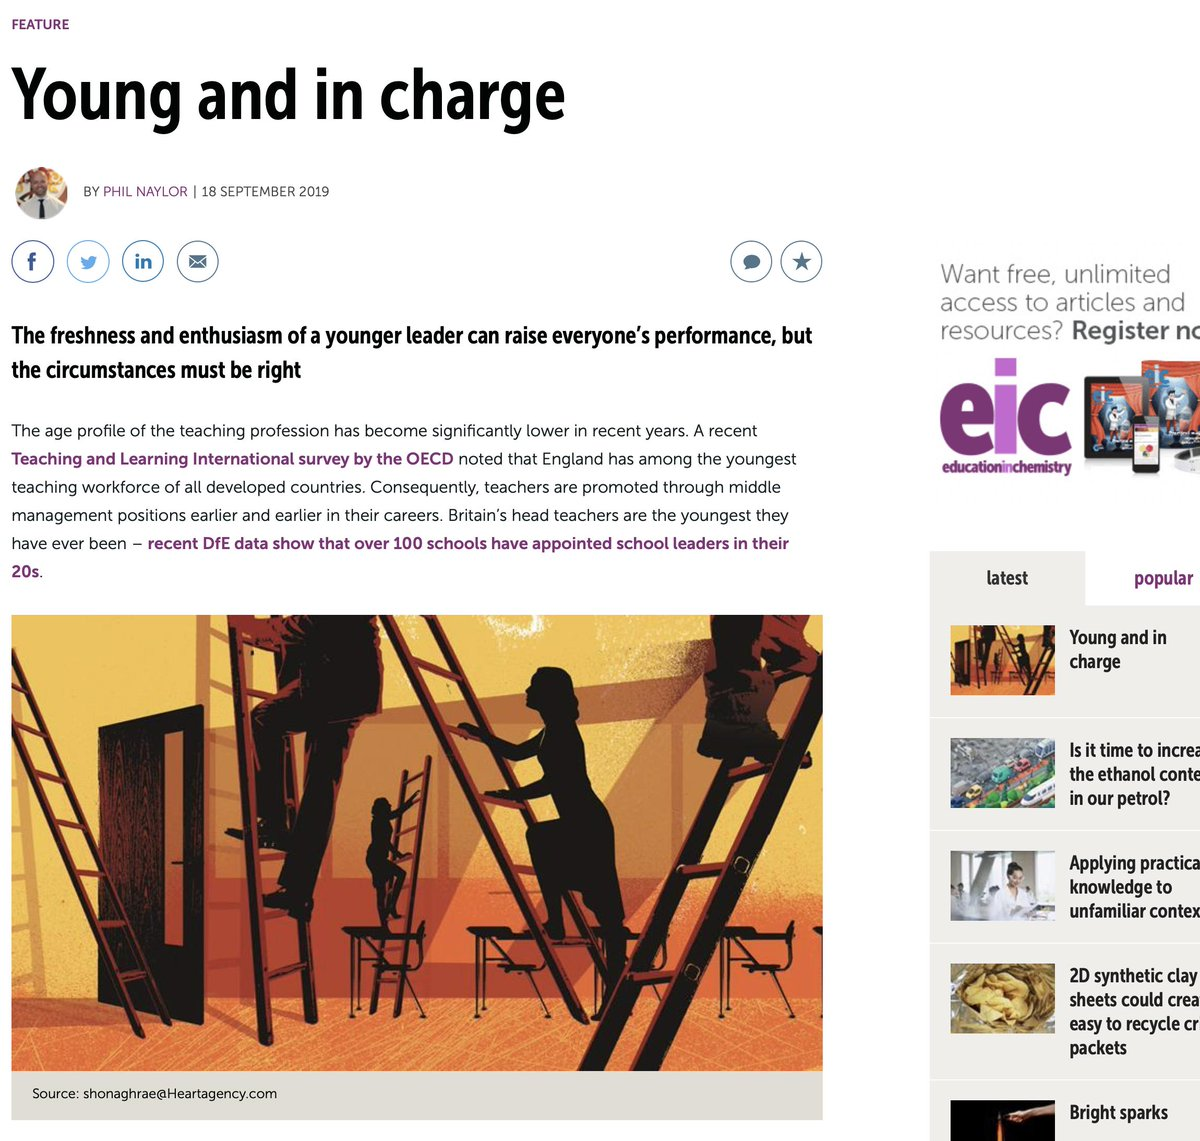 My latest article for @RSC_EiC on #promotion . Mentions for @mathsmrgordon @MaryBoustedNEU @educationgovuk @GavinWilliamson @CharteredColl through #ecf as well as @jon_severs @tes #education #recruitment Young and in charge eic.rsc.org/feature/young-…